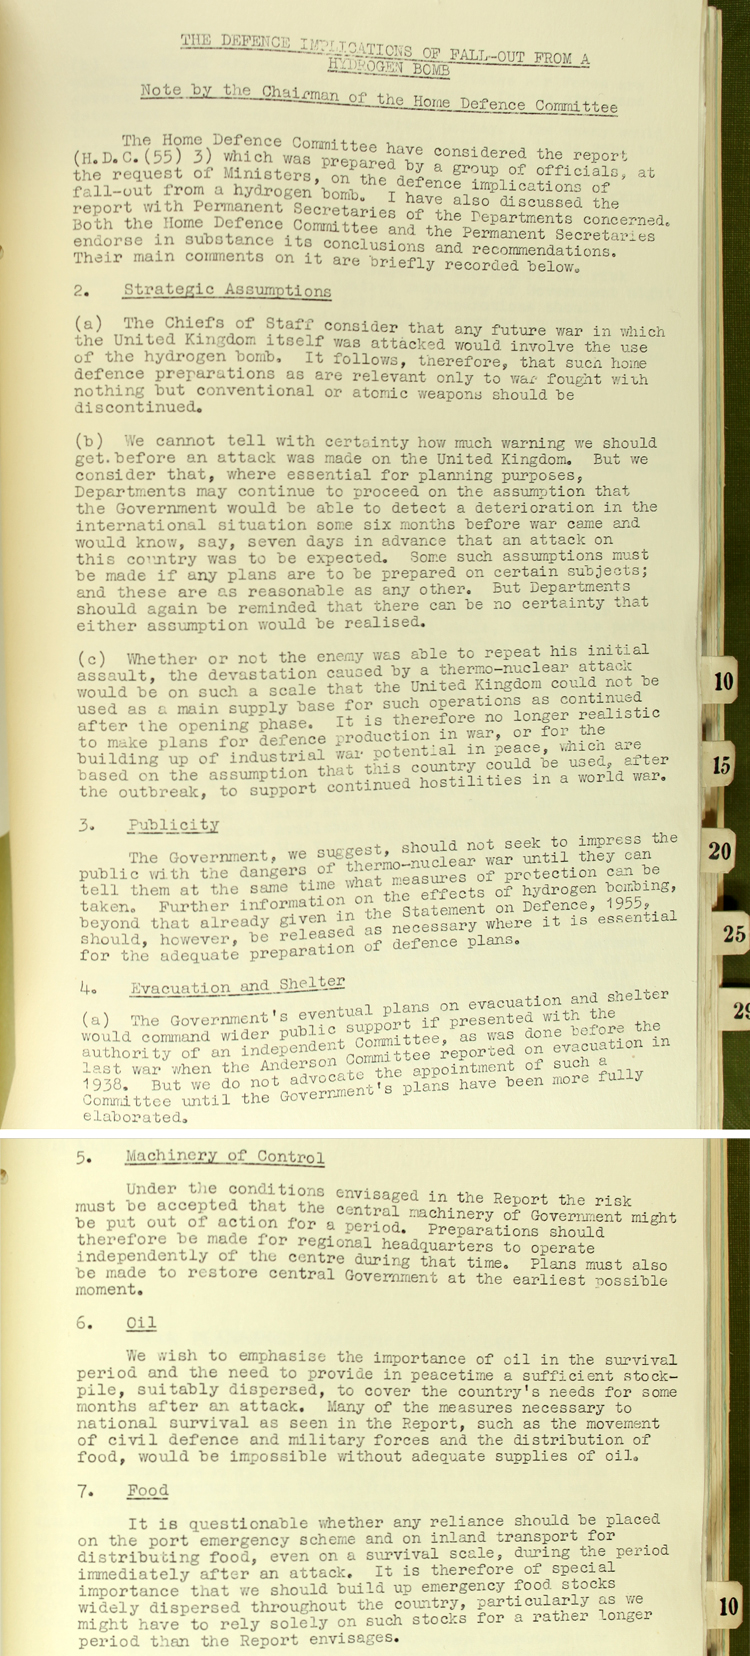 Summary of comments on a report outlining the defence implications of a Hydrogen Bomb attack recorded by Norman Brook at the Cabinet Office, 25th March, 1955 (CAB 134/940)